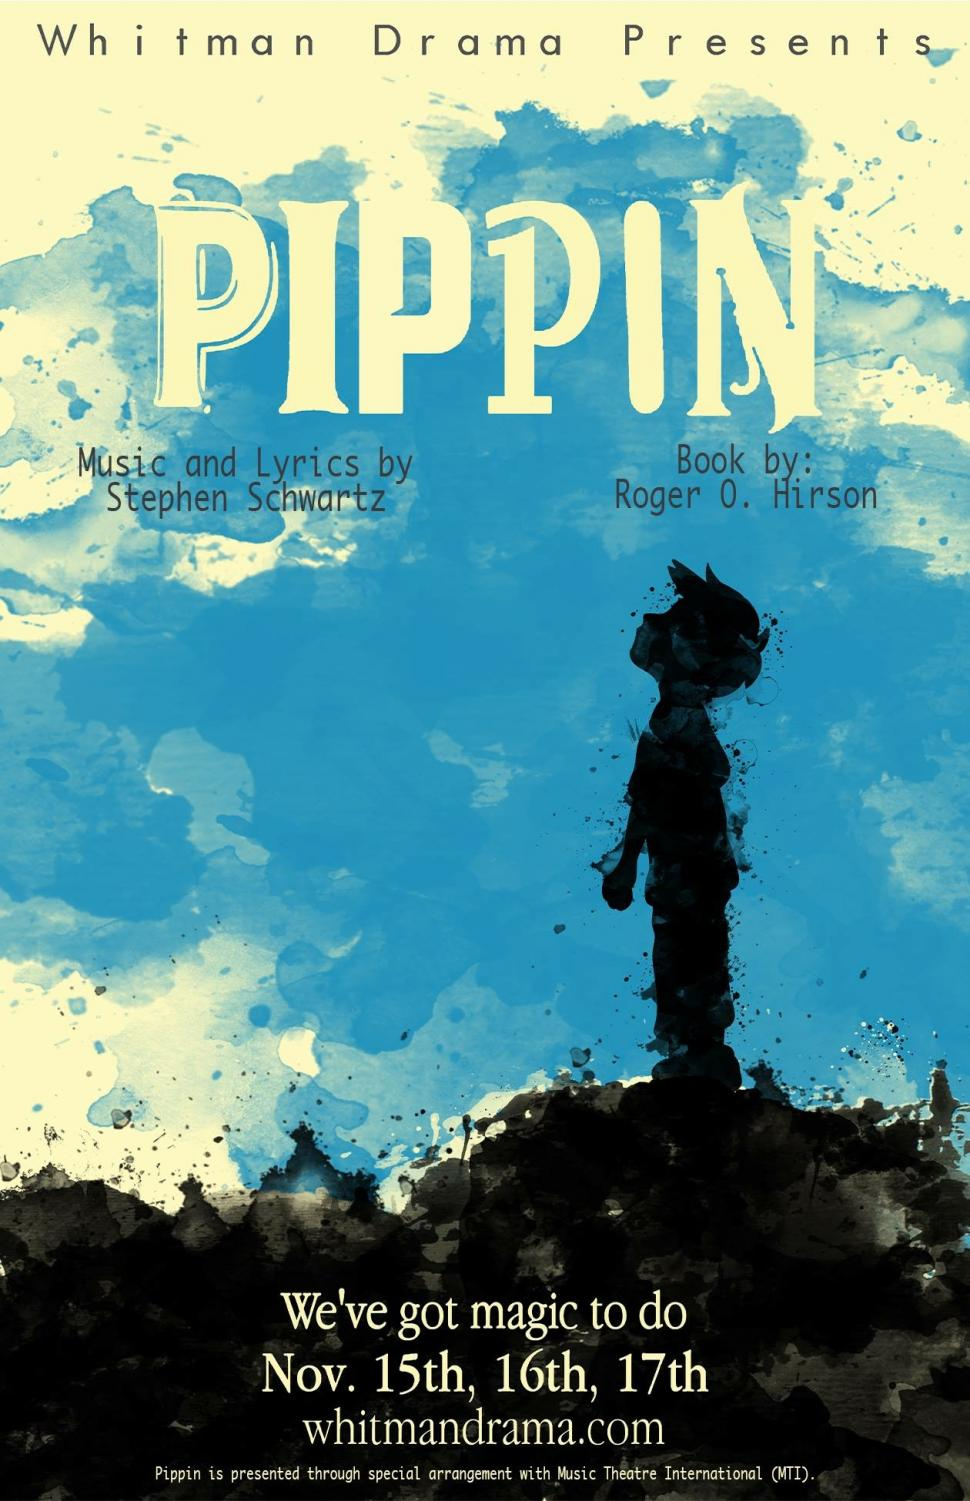 Each Whitman Drama play and musical has an artwork designed to advertise the production. During Teach Week, the publicity team distributes flyers and postcards with the artwork. Pippin artwork designed by Kevin Hatcher ('18).